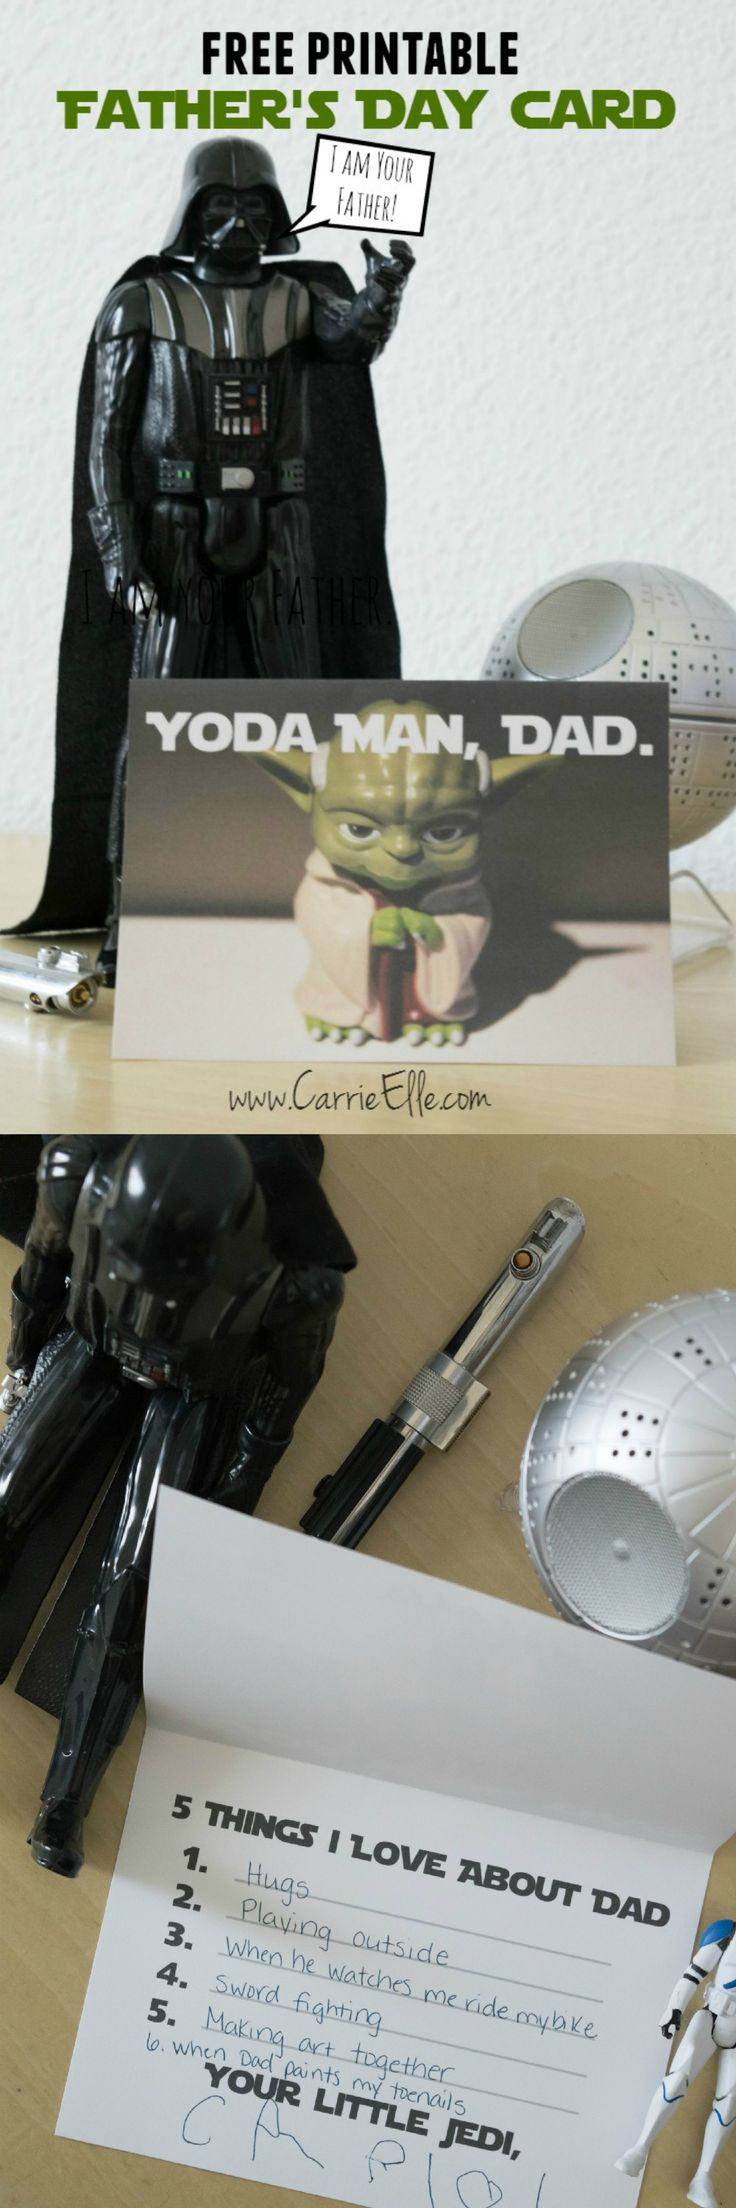 Free printable Father's Day cards, Star Wars style! This is SO fun!